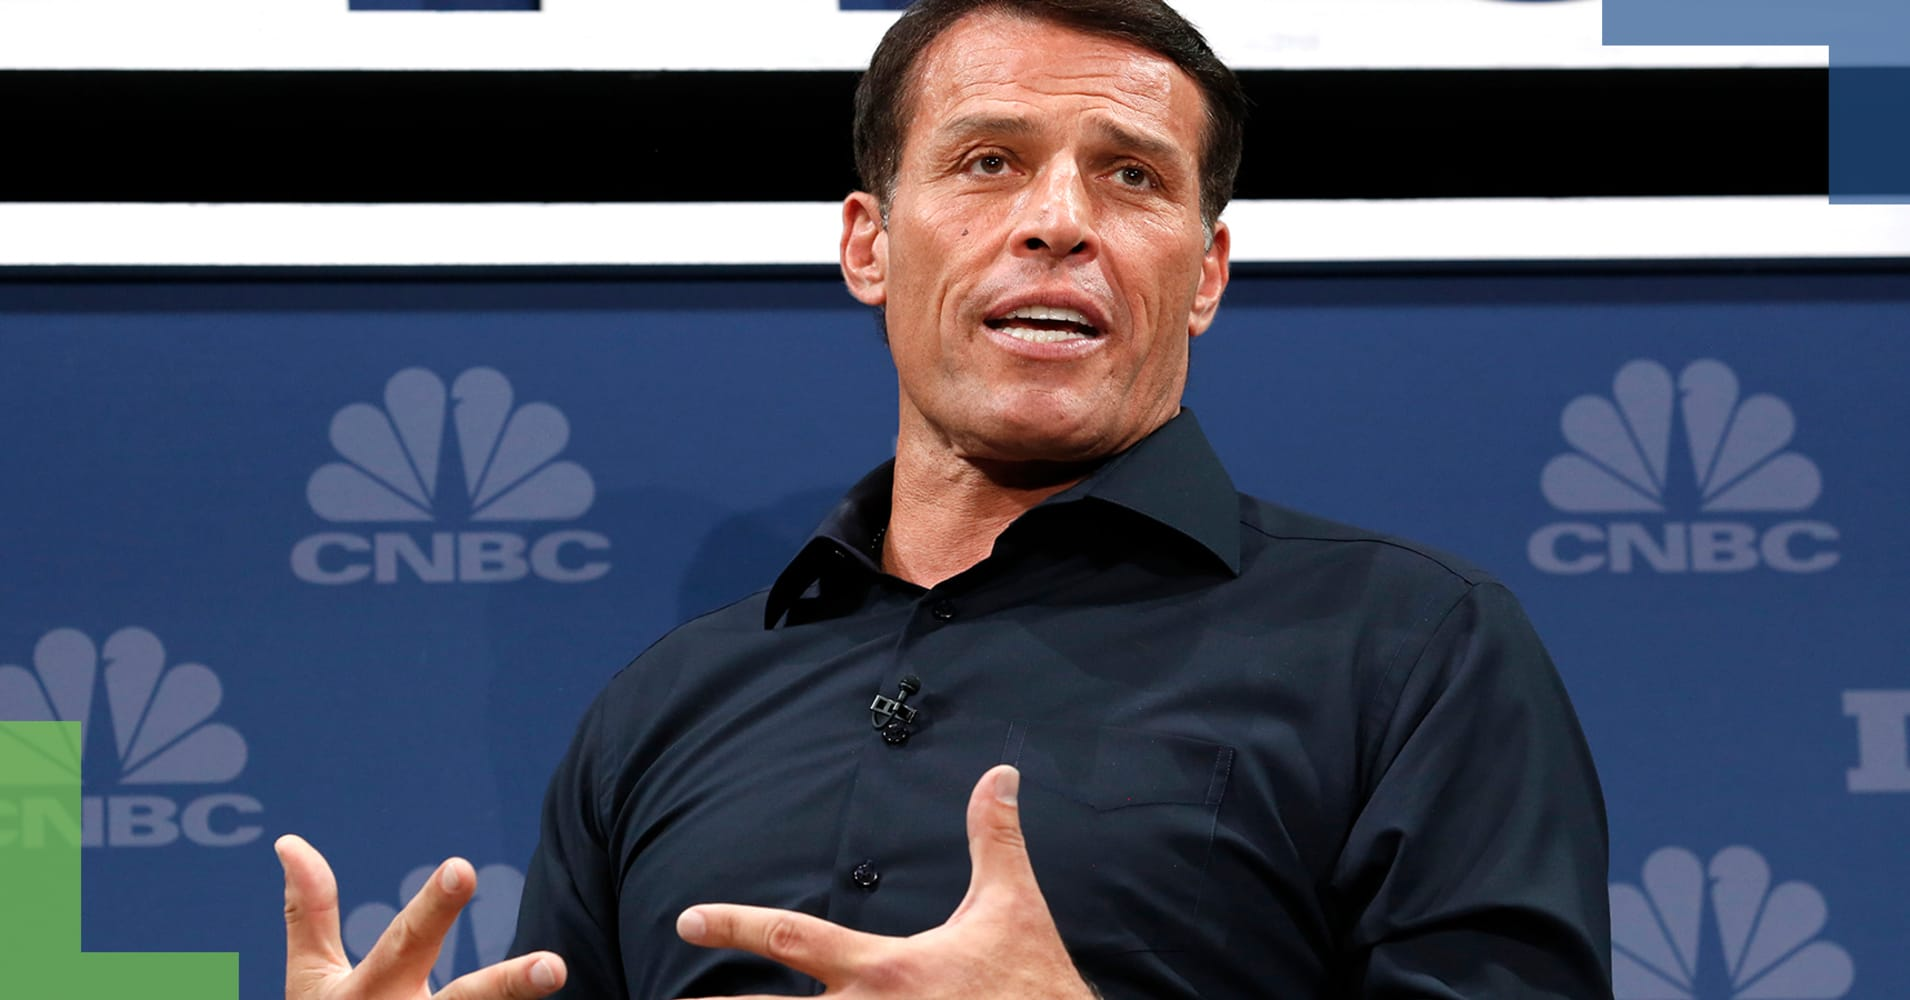 Tony Robbins says these are the 3 biggest reasons investors fail